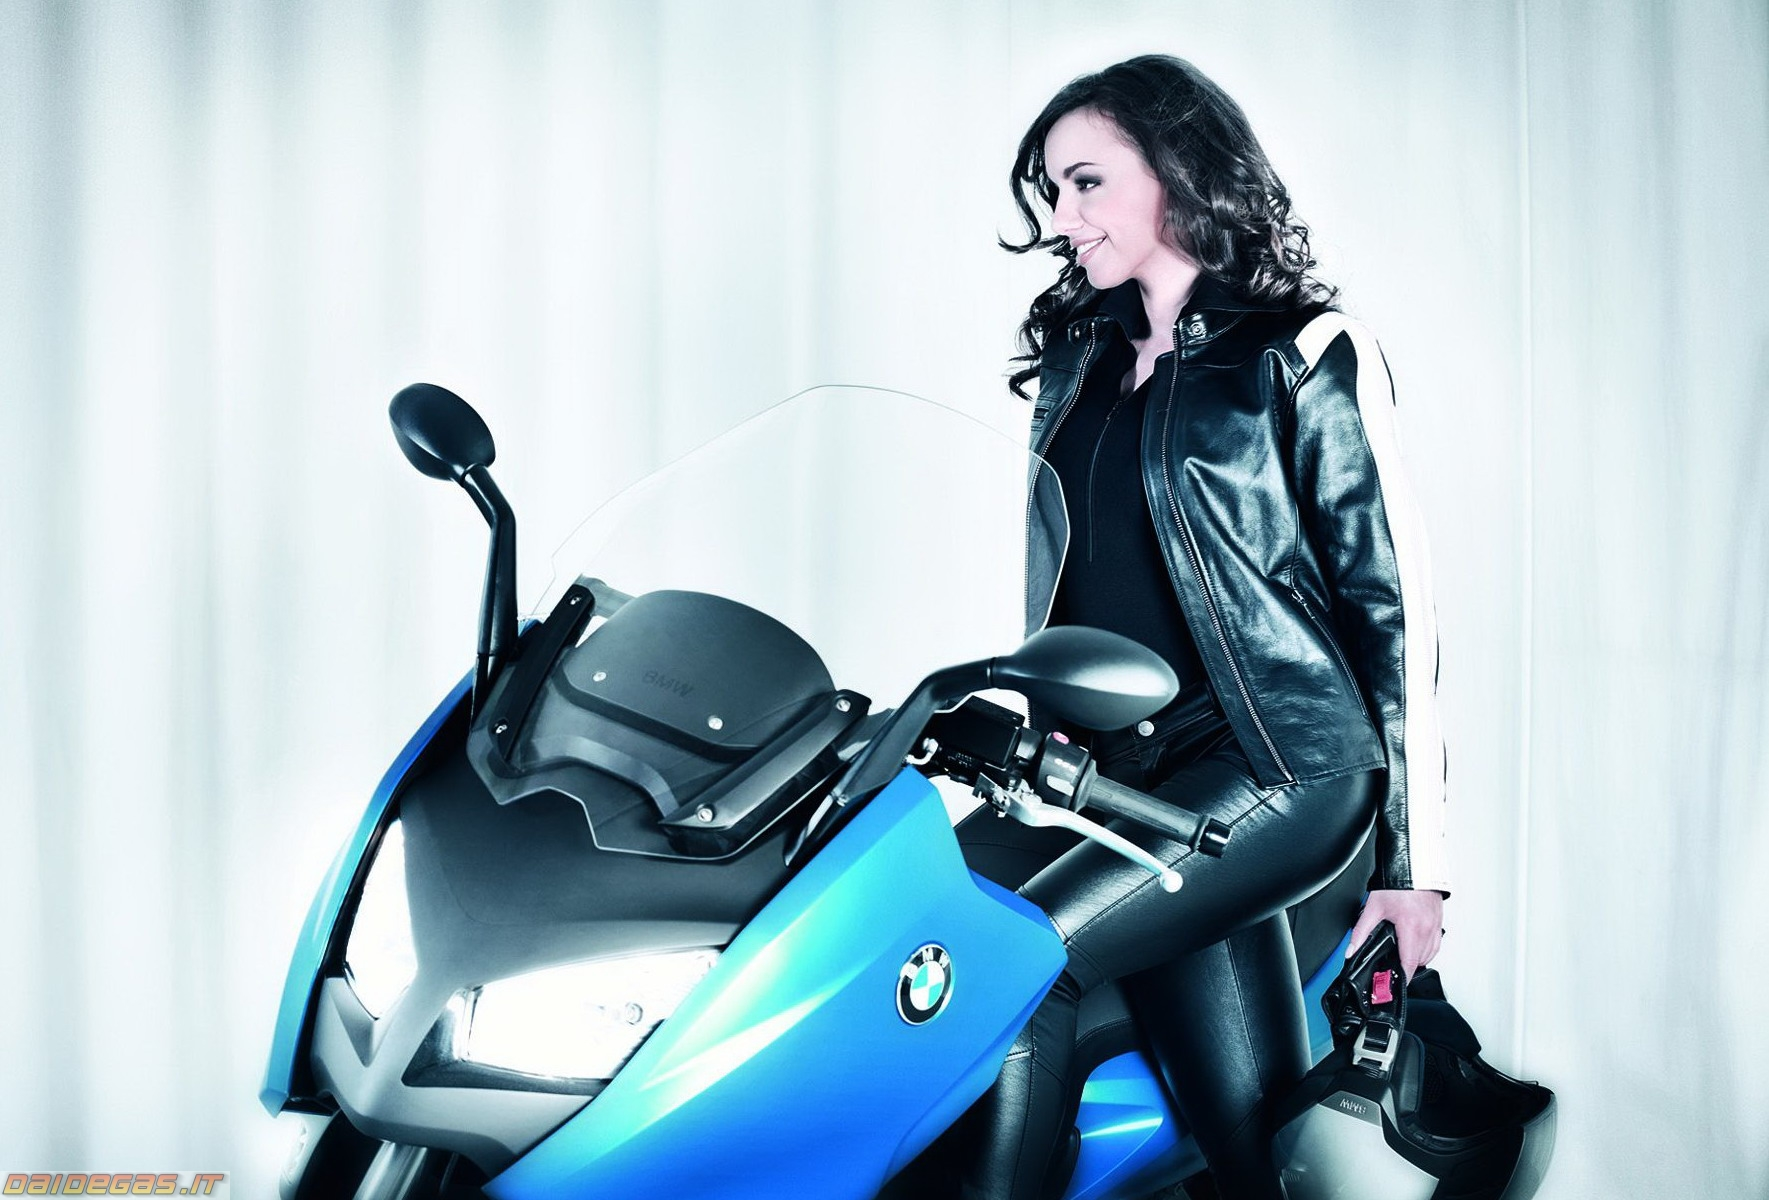 Bmw C600 – ridin girl – 01